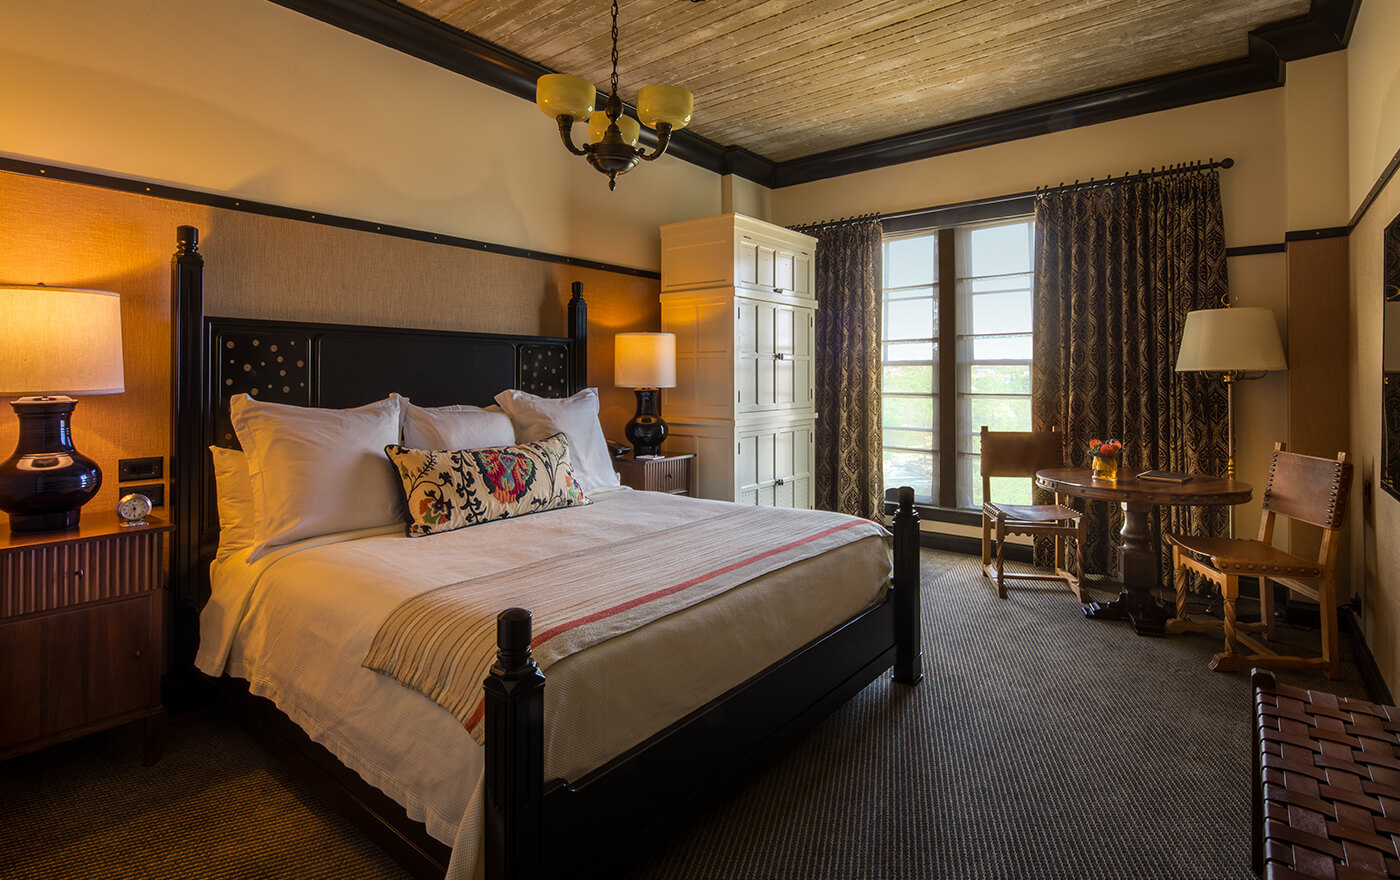 A picture of the bedroom in Hotel Emma's artesian rooms. Pictured is a king sized bed with nightstands and a table with two chairs.